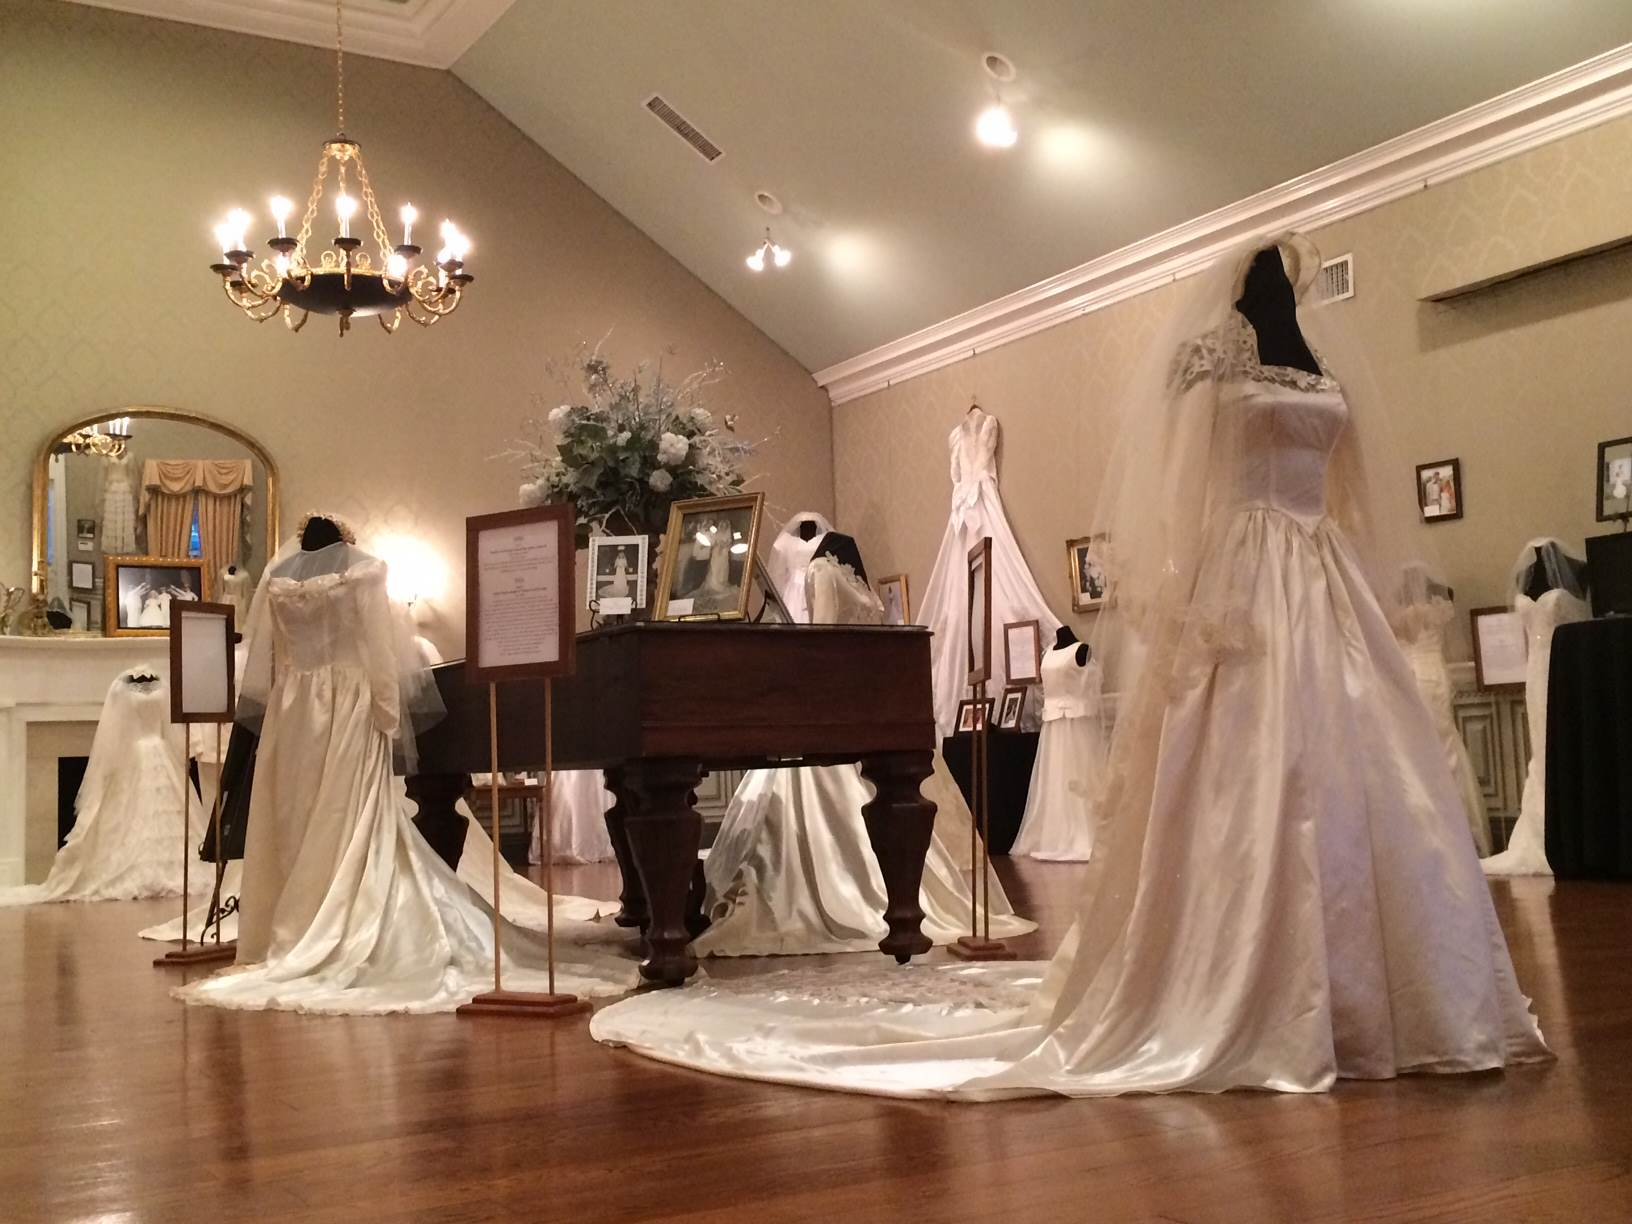 Stories Of Our Community Will Come To Life Through Wedding Gowns On Display At Oaklands Mansion Step Back Into Time And Experience The Common Threads That